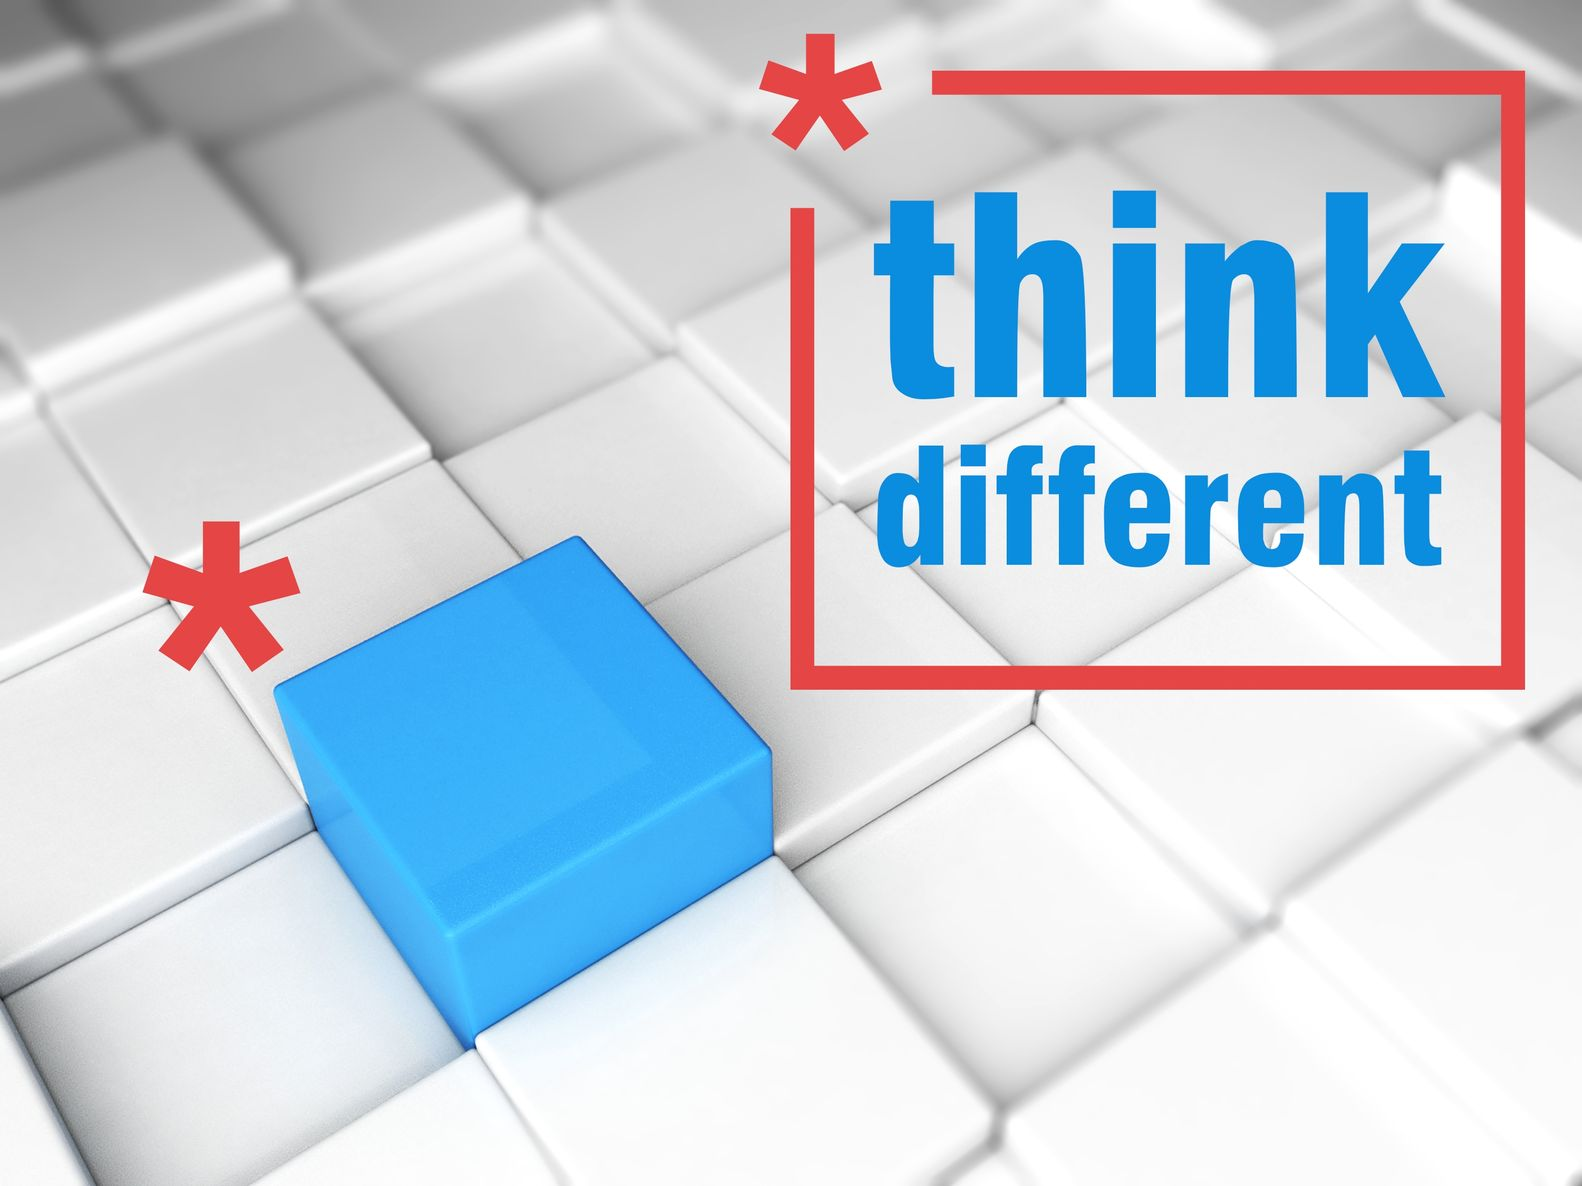 think-different-keyboard